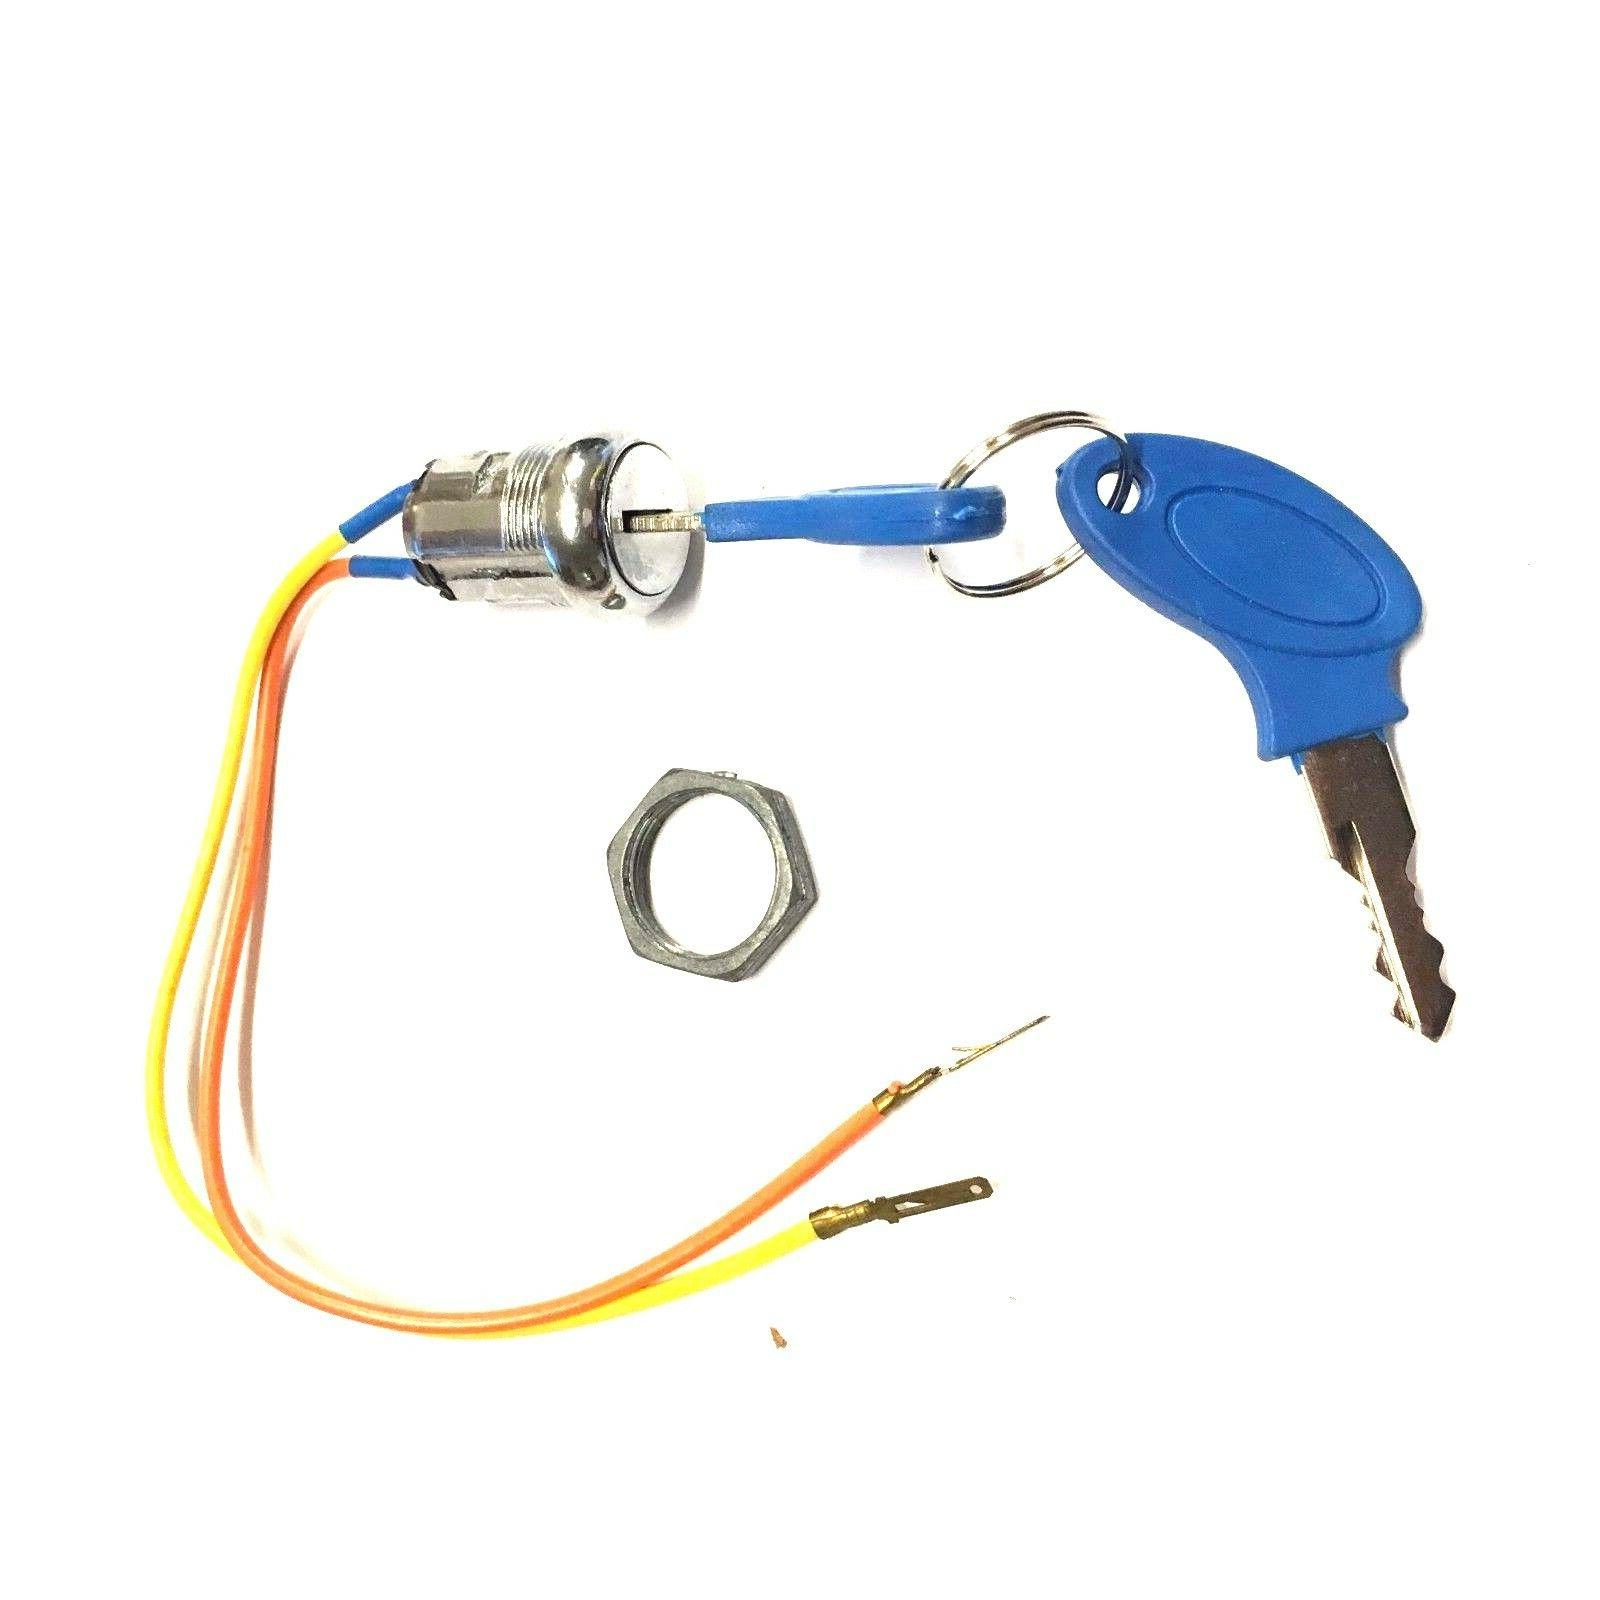 2-WIRE IGNITION KEY SWITCH BLUE 2 POSITION MOBILITY SCOOTER POWER CHAIR ELECTRIC